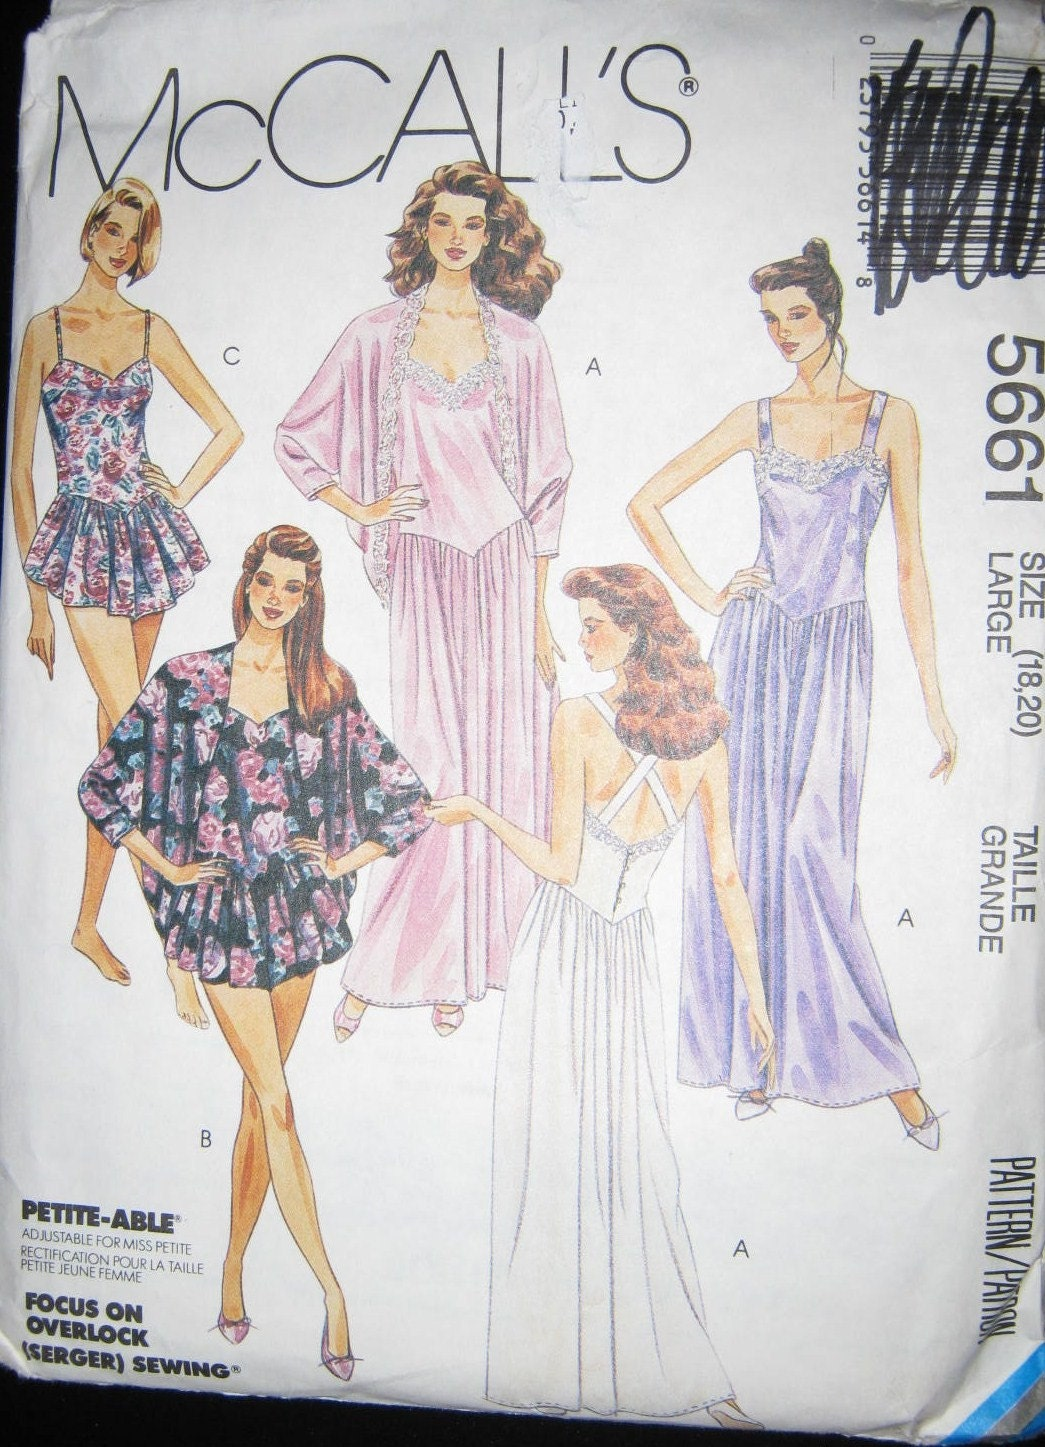 Mccalls 5661 Vintage 80s Pajamas And Nightgowns Pattern